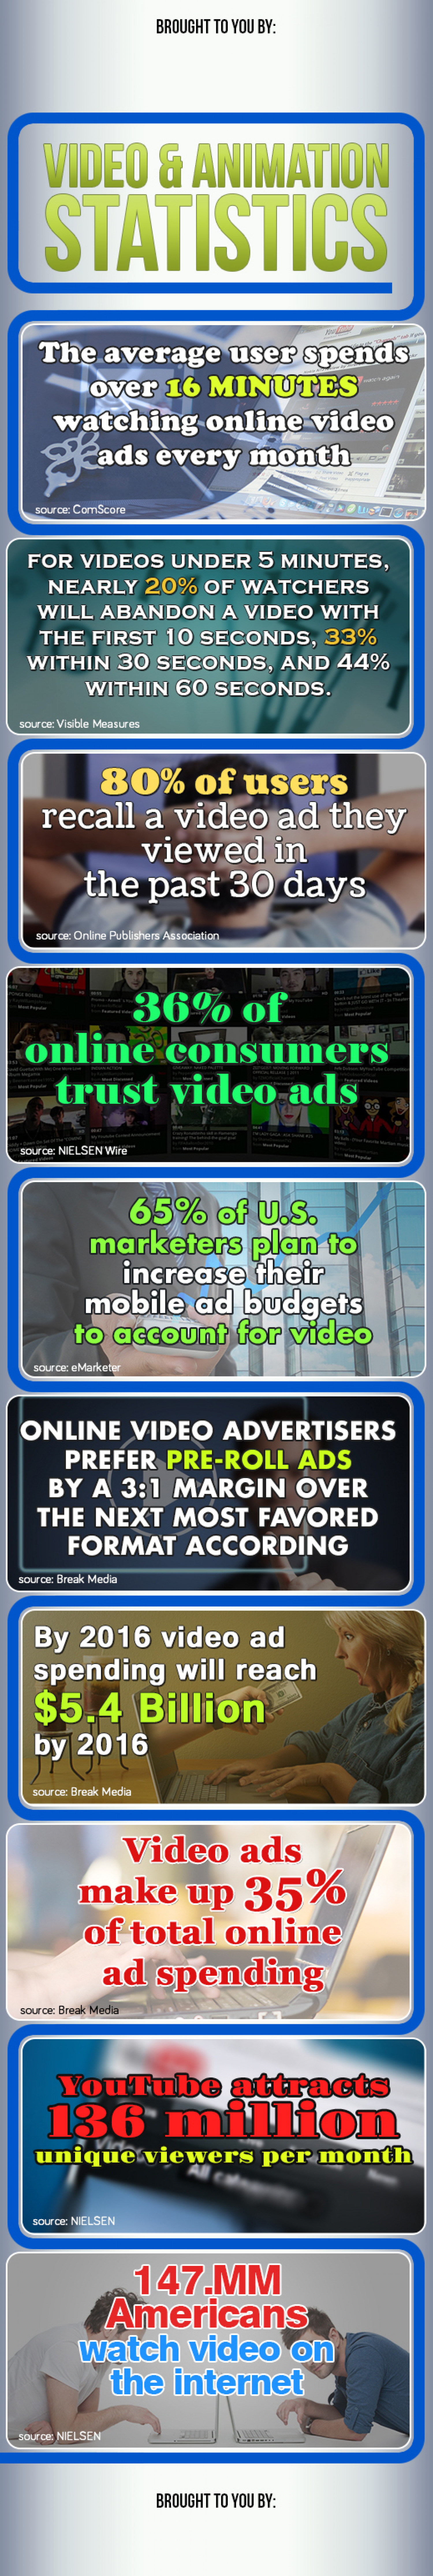 Video & Animation Statistics Infographic